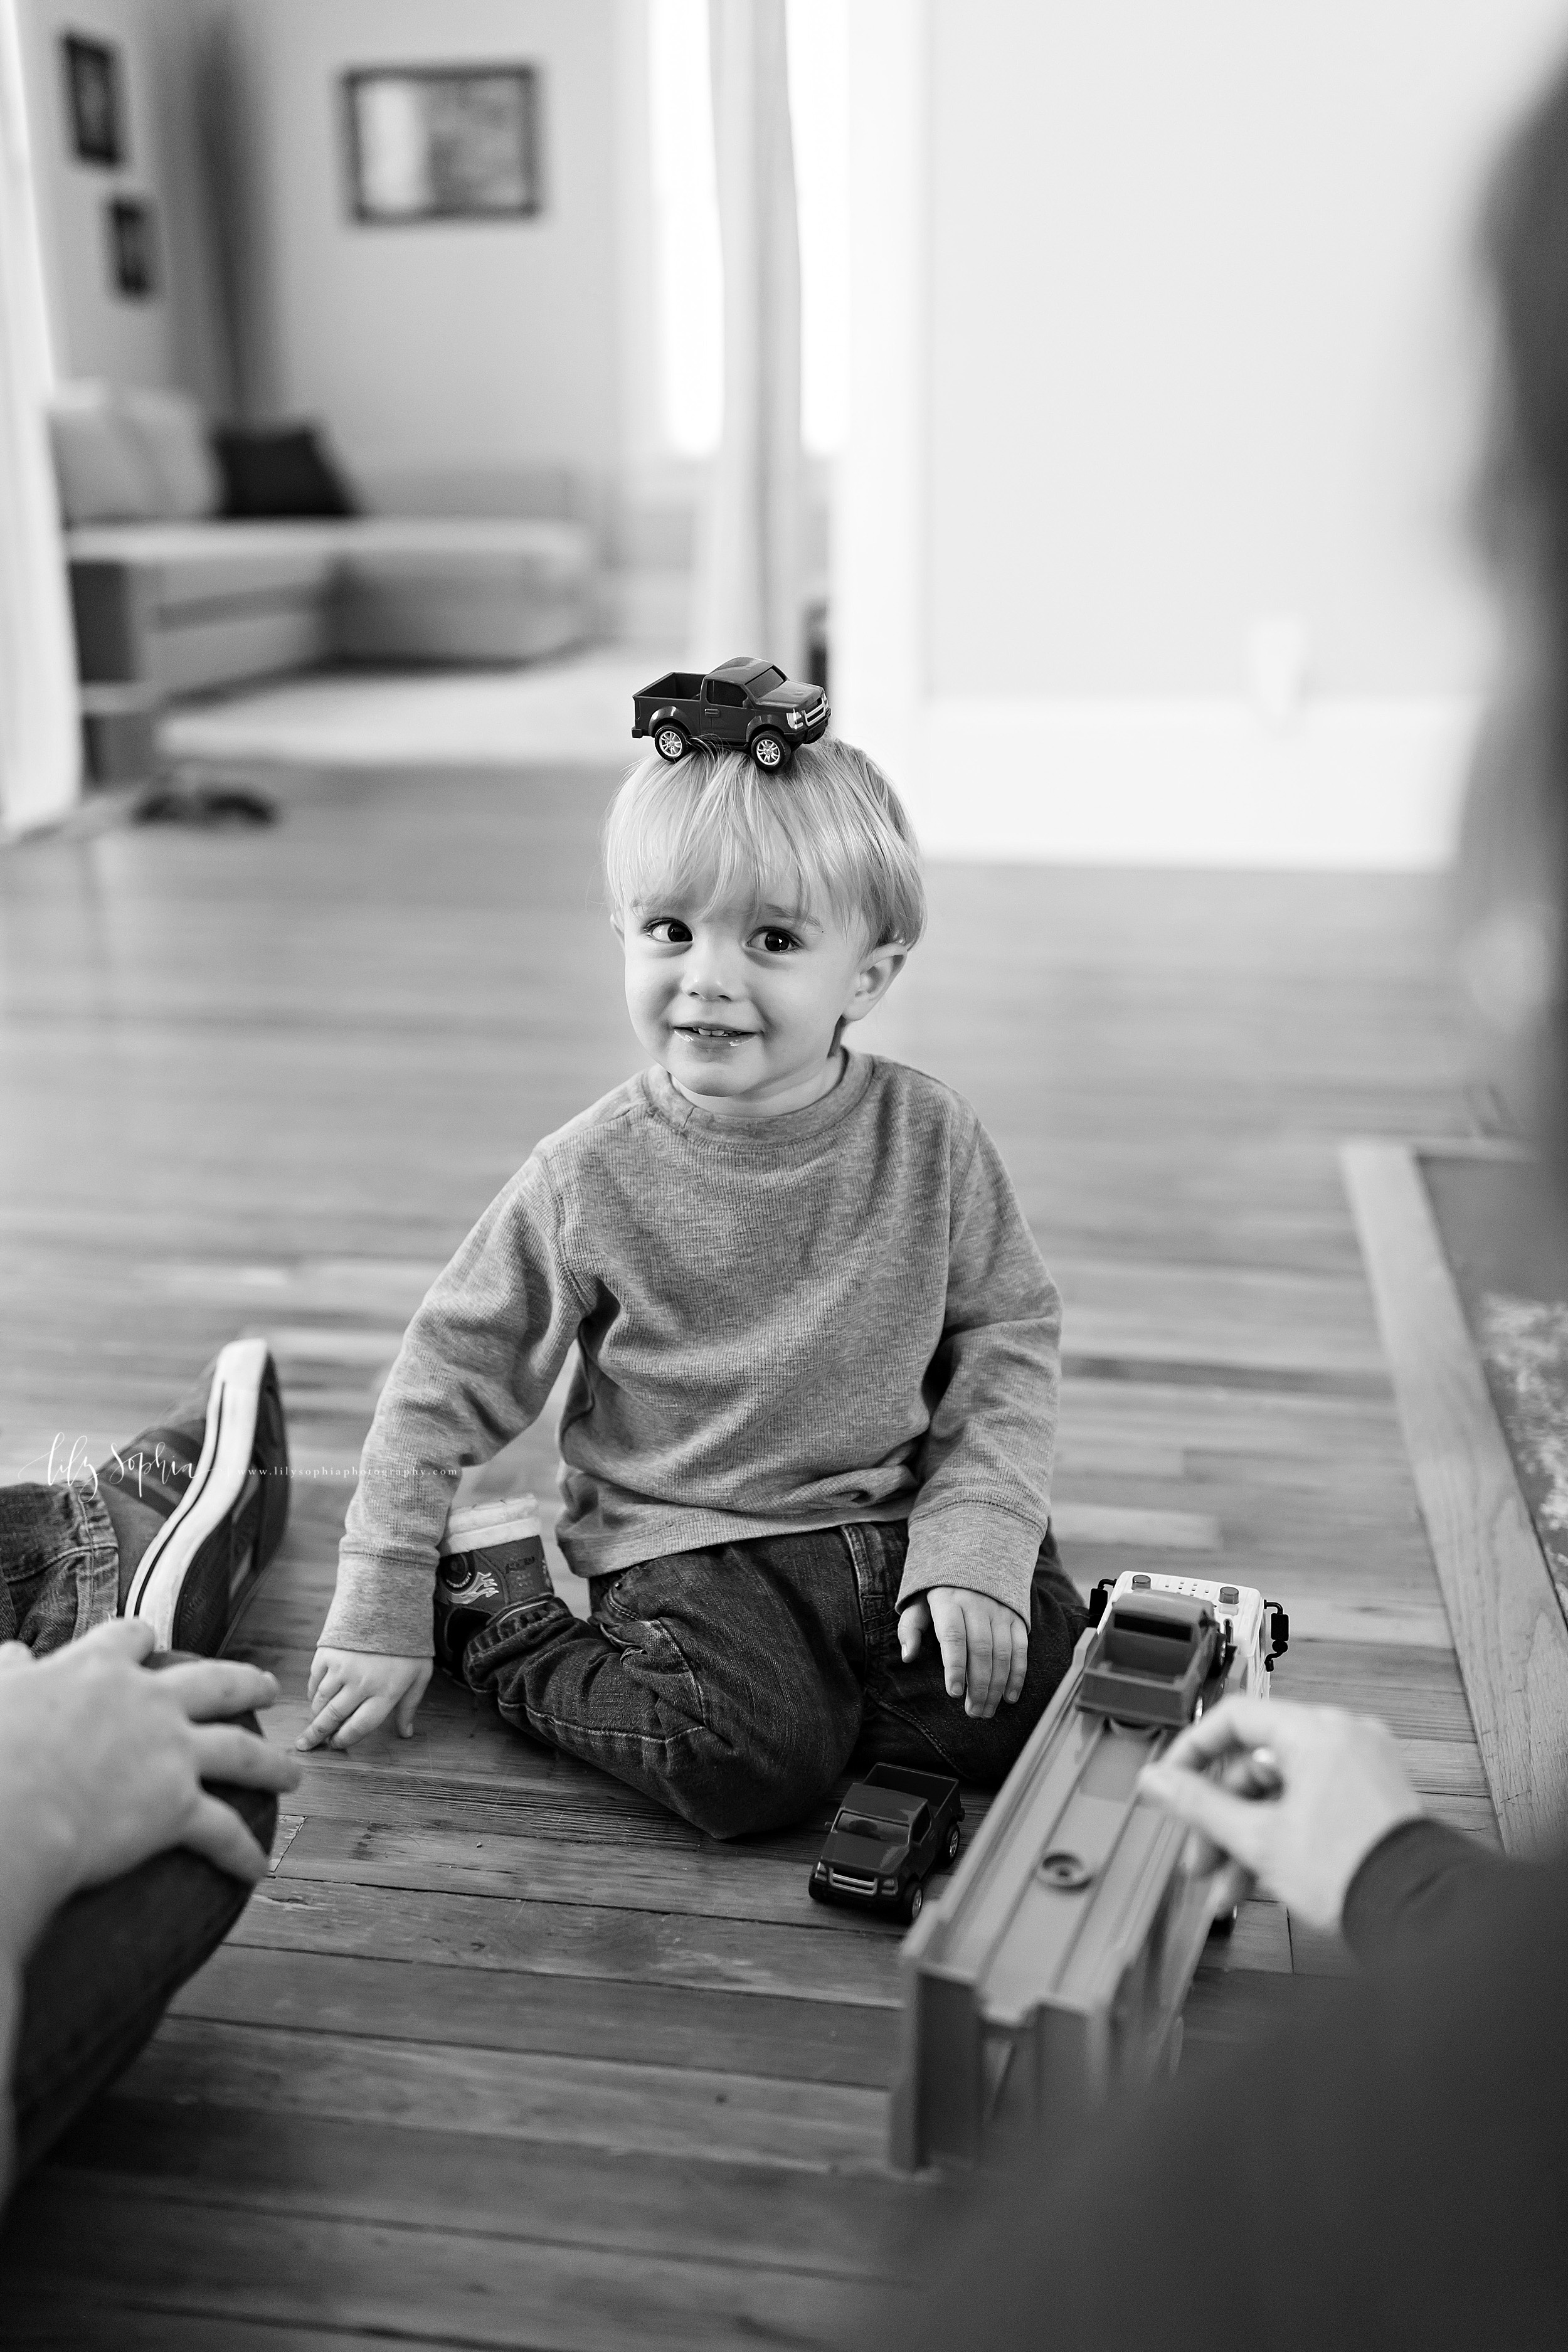 Black and white lifestyle photo of a family of three as they play with cars and trucks on the floor of their home.  The blond toddler balances a truck on his head.